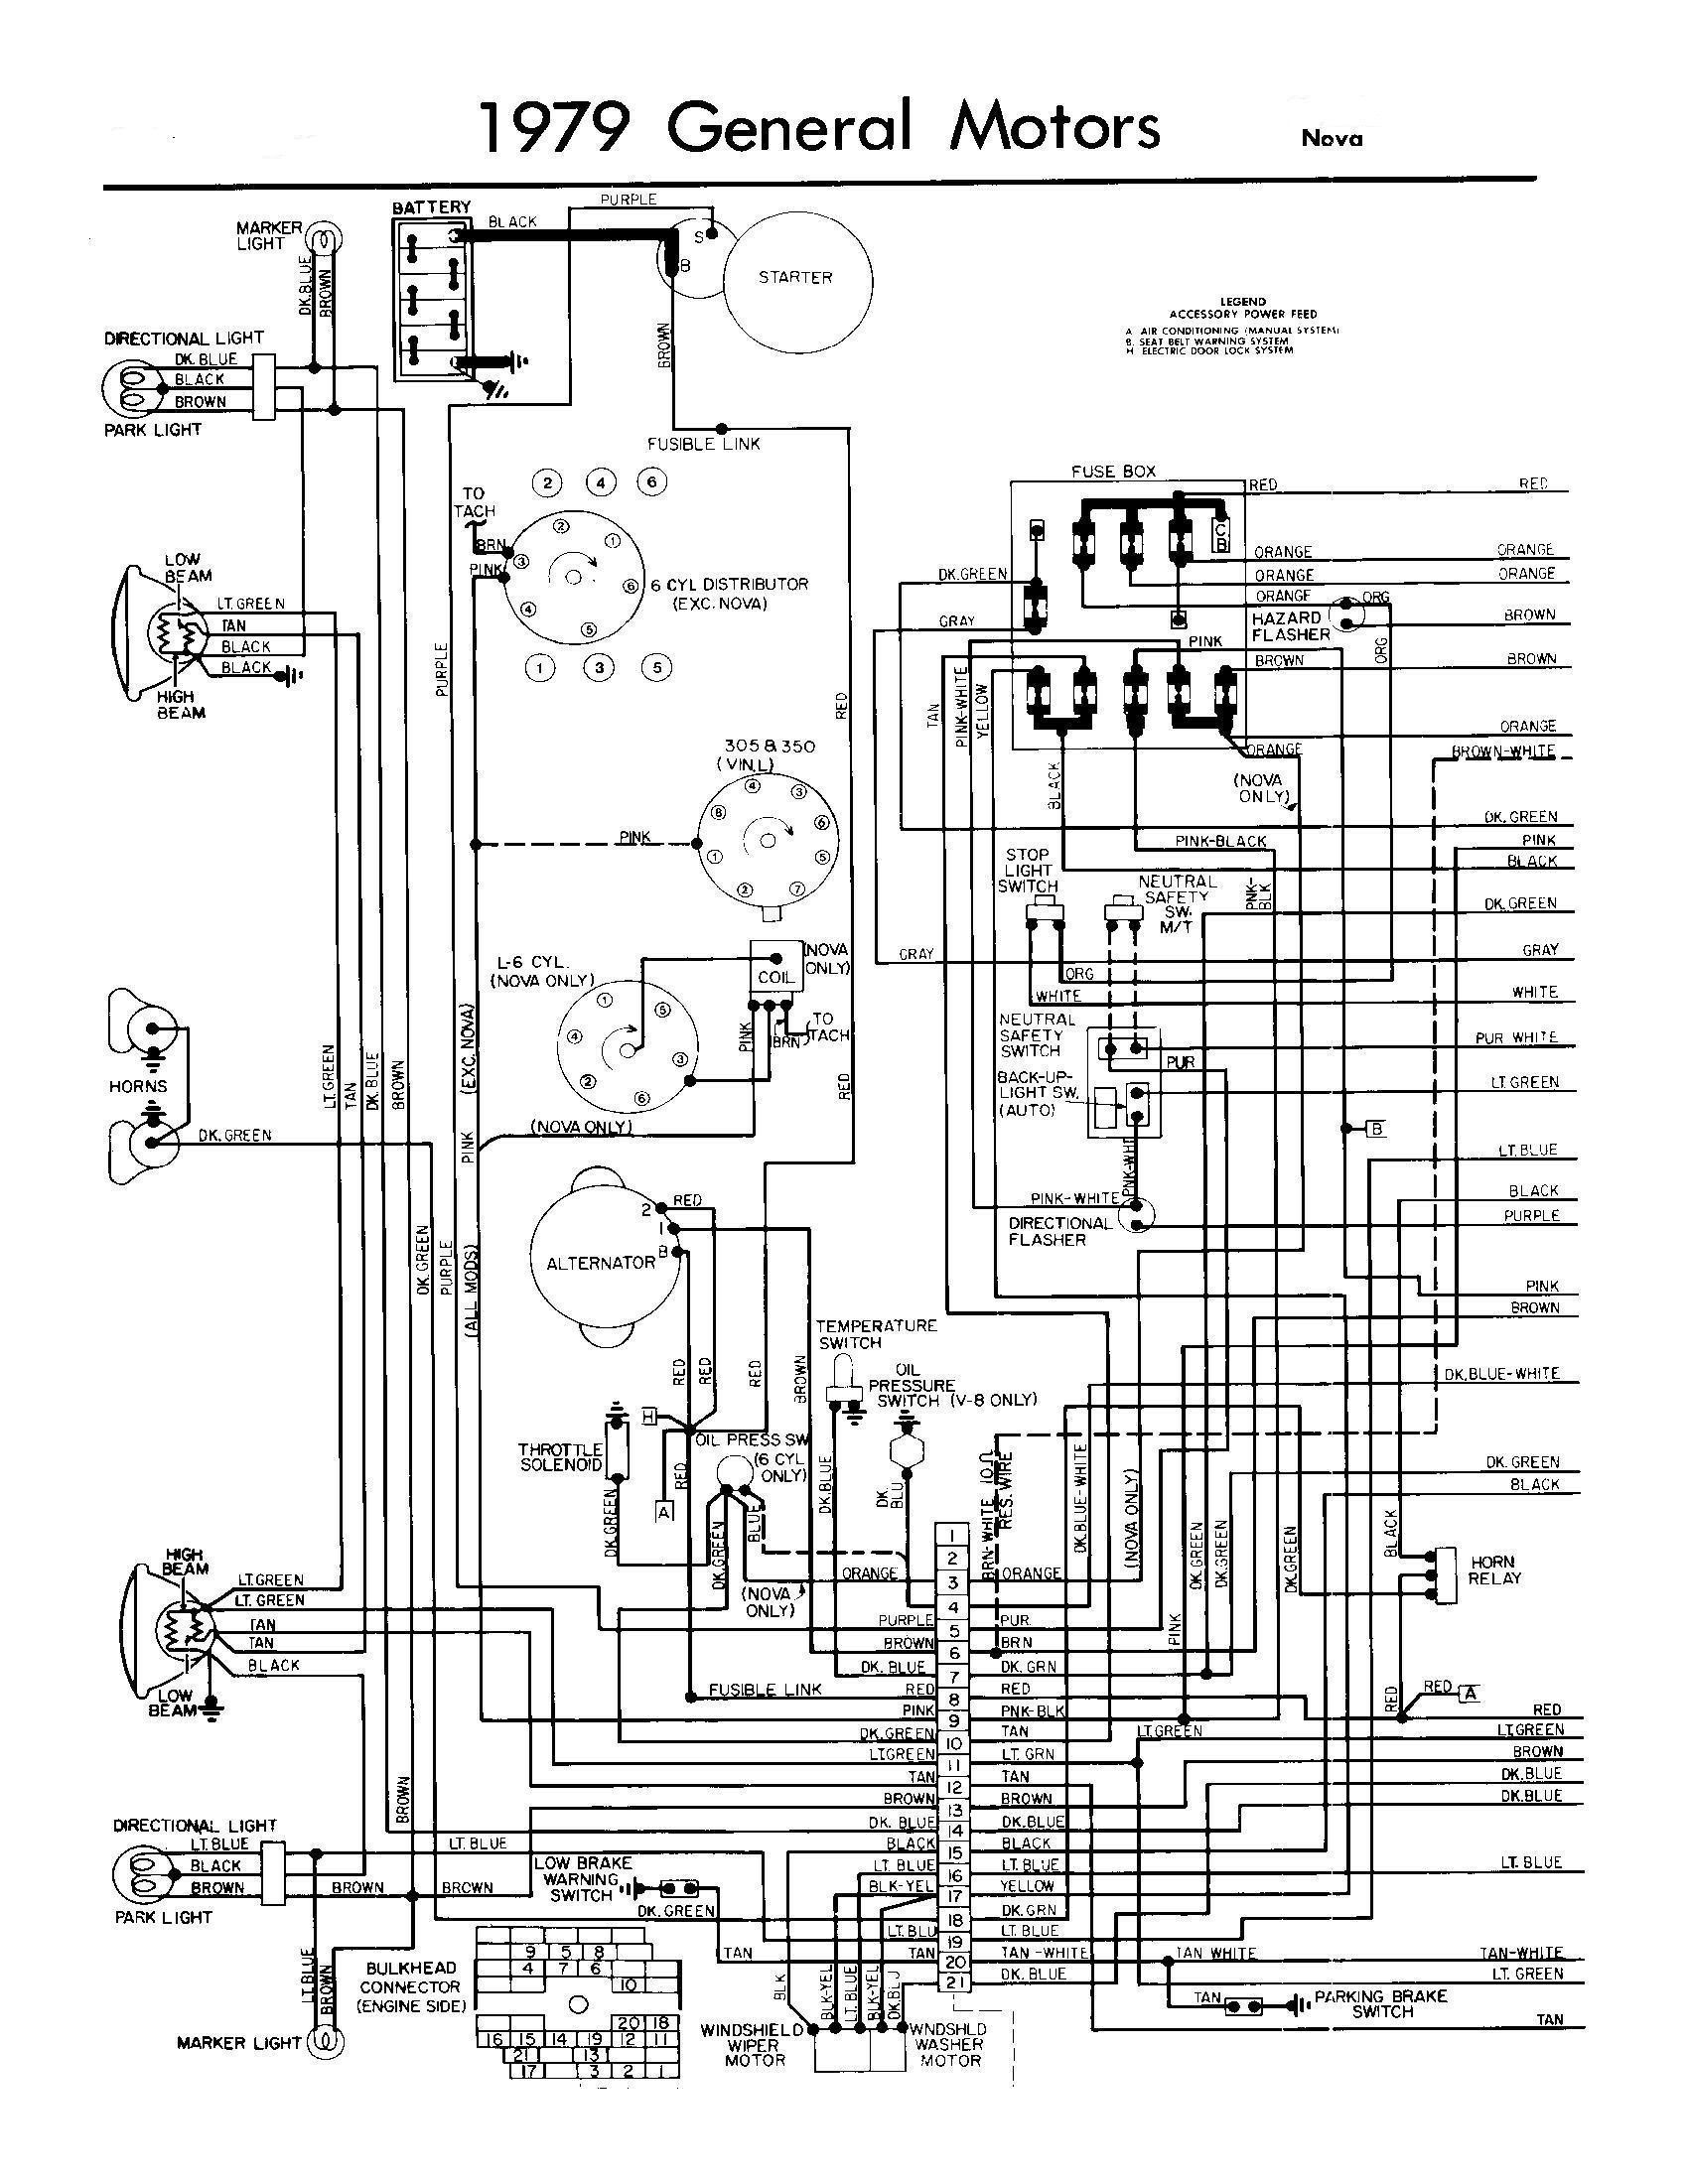 1986 nova vacuum diagram example electrical wiring diagram u2022 rh 162 212  157 63 Chevy Tail Light Wiring Diagram 1966 Chevy C20 Wiring-Diagram